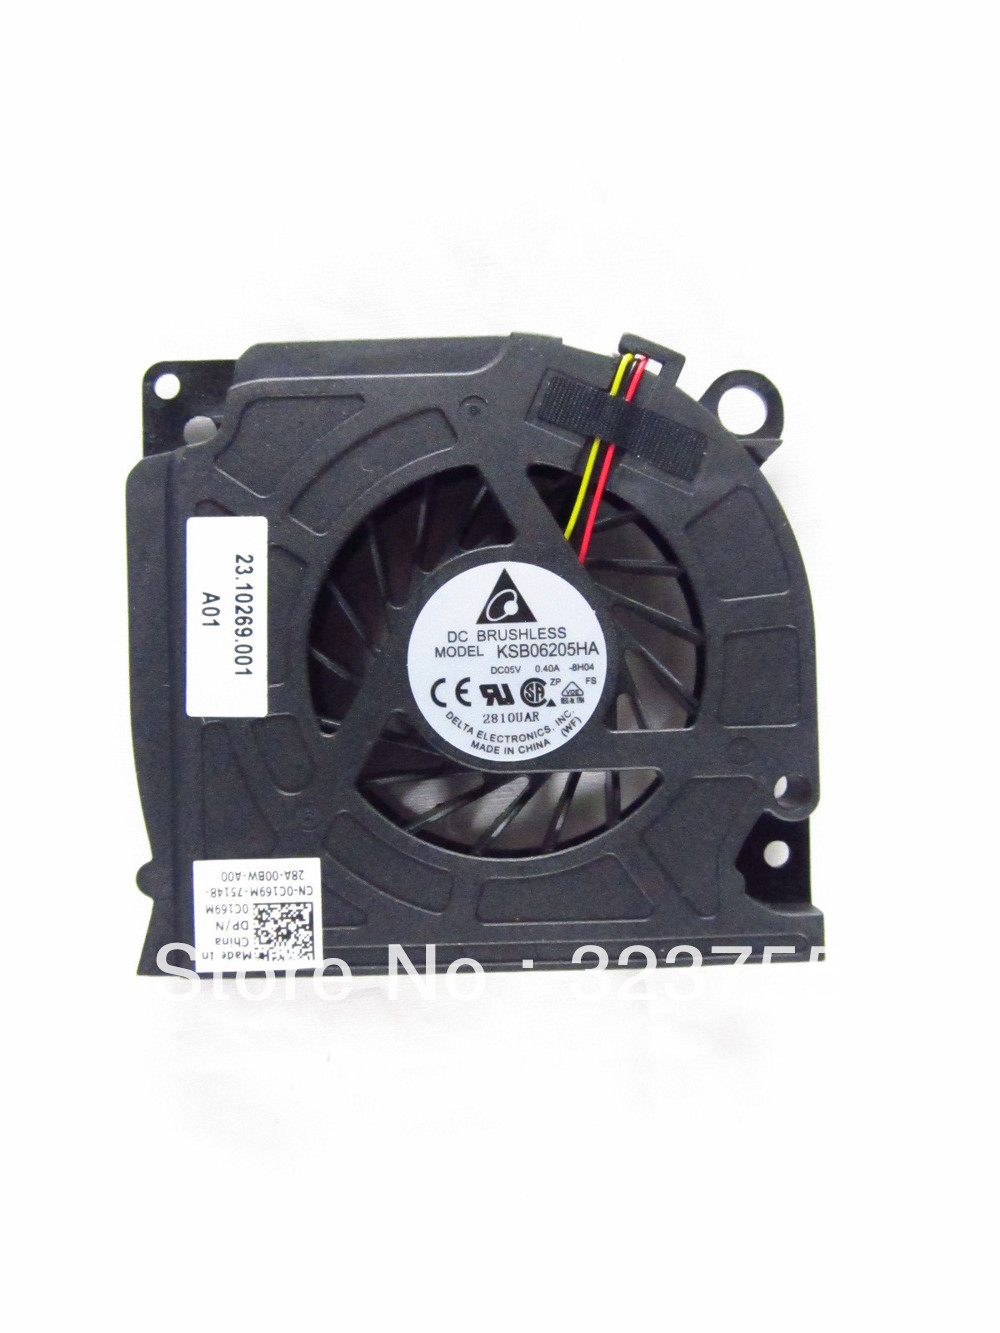 New Cooler cpu Fan for DELL Inspiron 1525 1526 1545 LAPTOP * FREE SHIPPING*(Hong Kong)